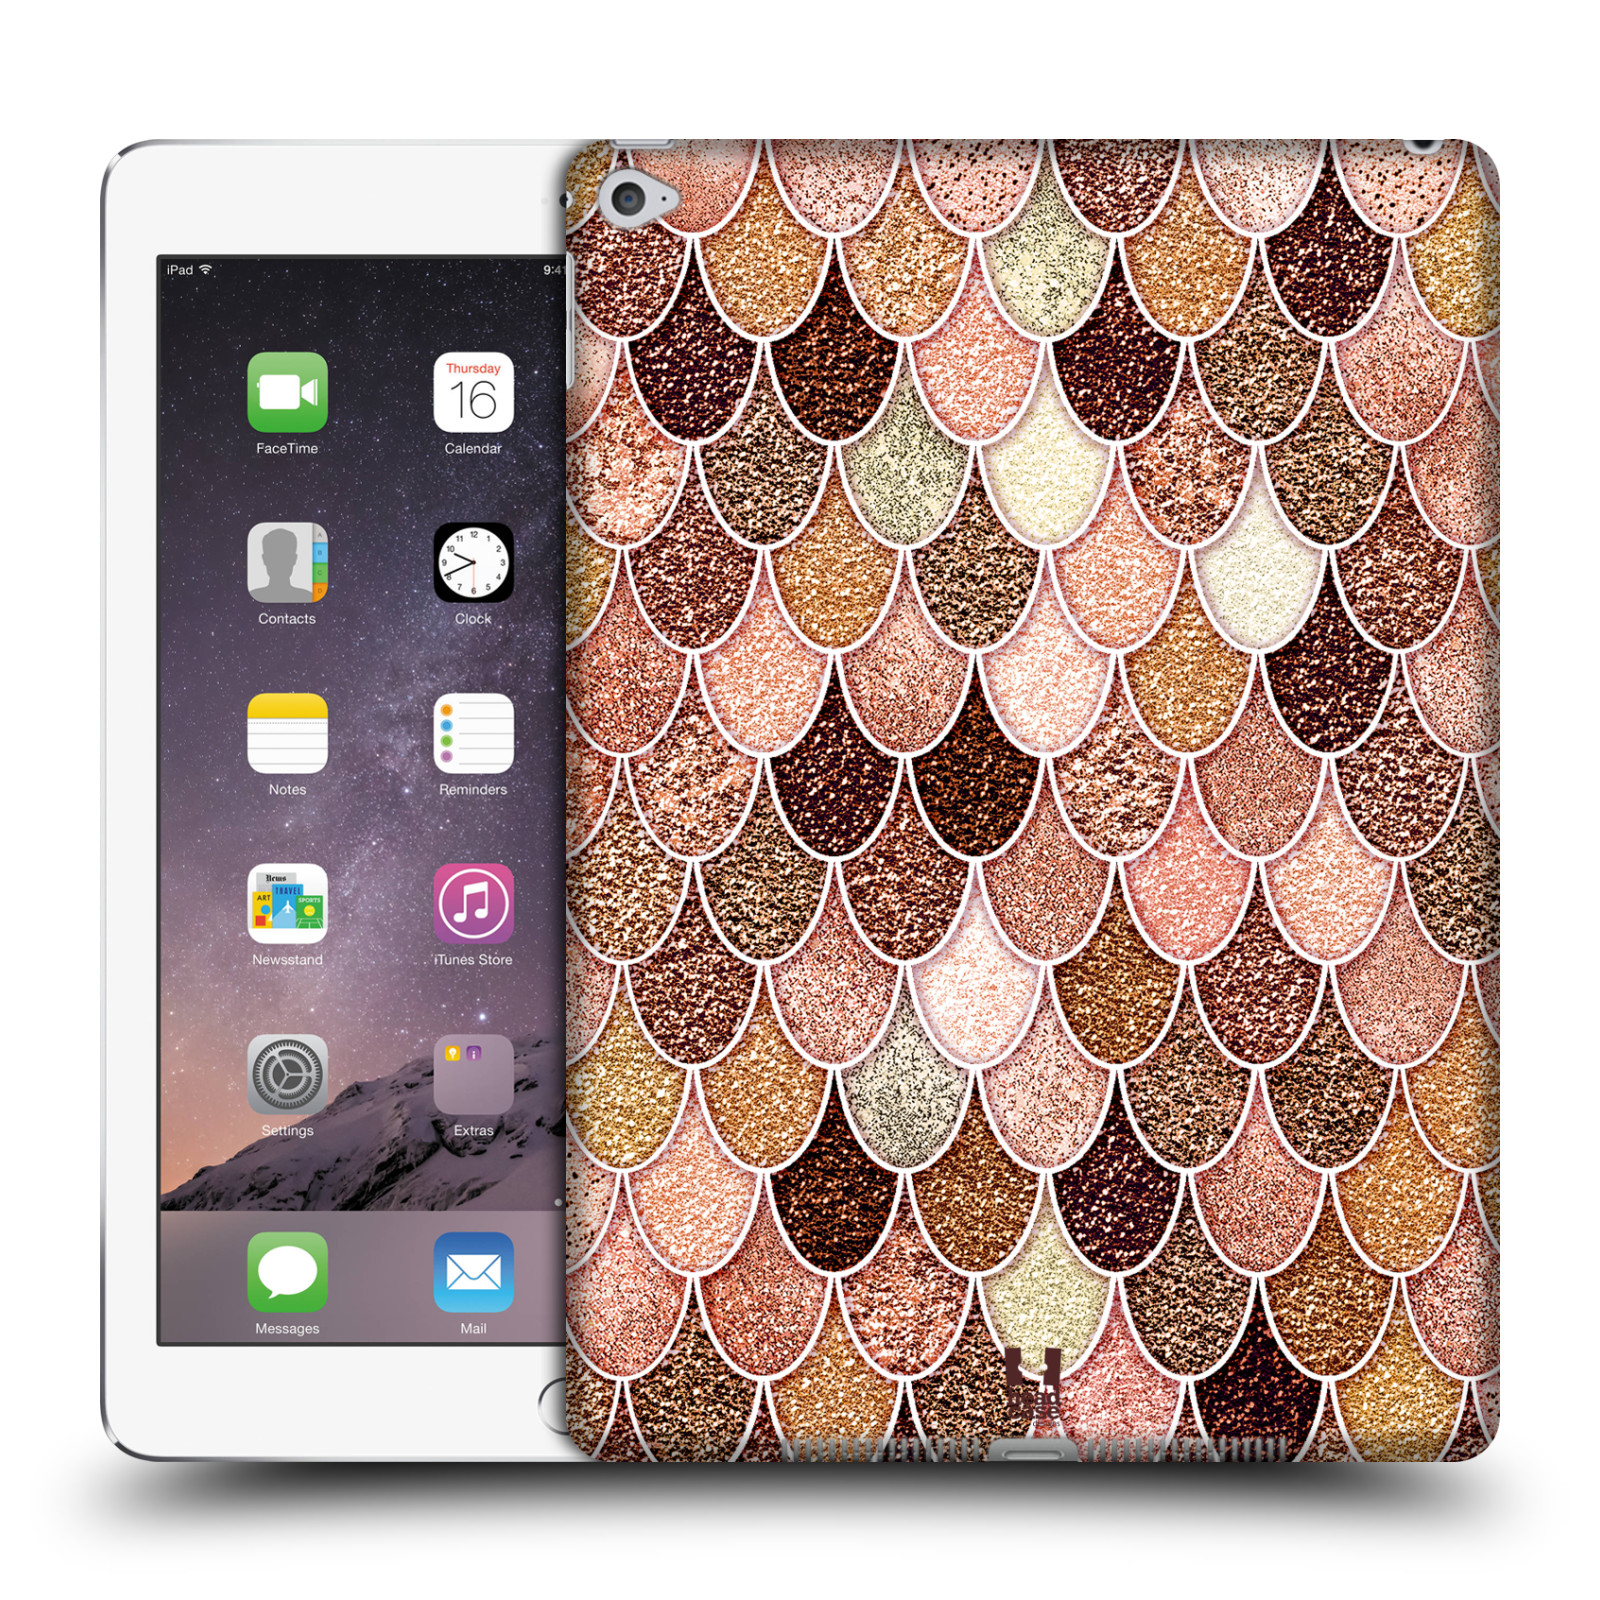 HEAD-CASE-DESIGNS-MERMAID-SCALES-PATTERNS-HARD-BACK-CASE-FOR-APPLE-iPAD